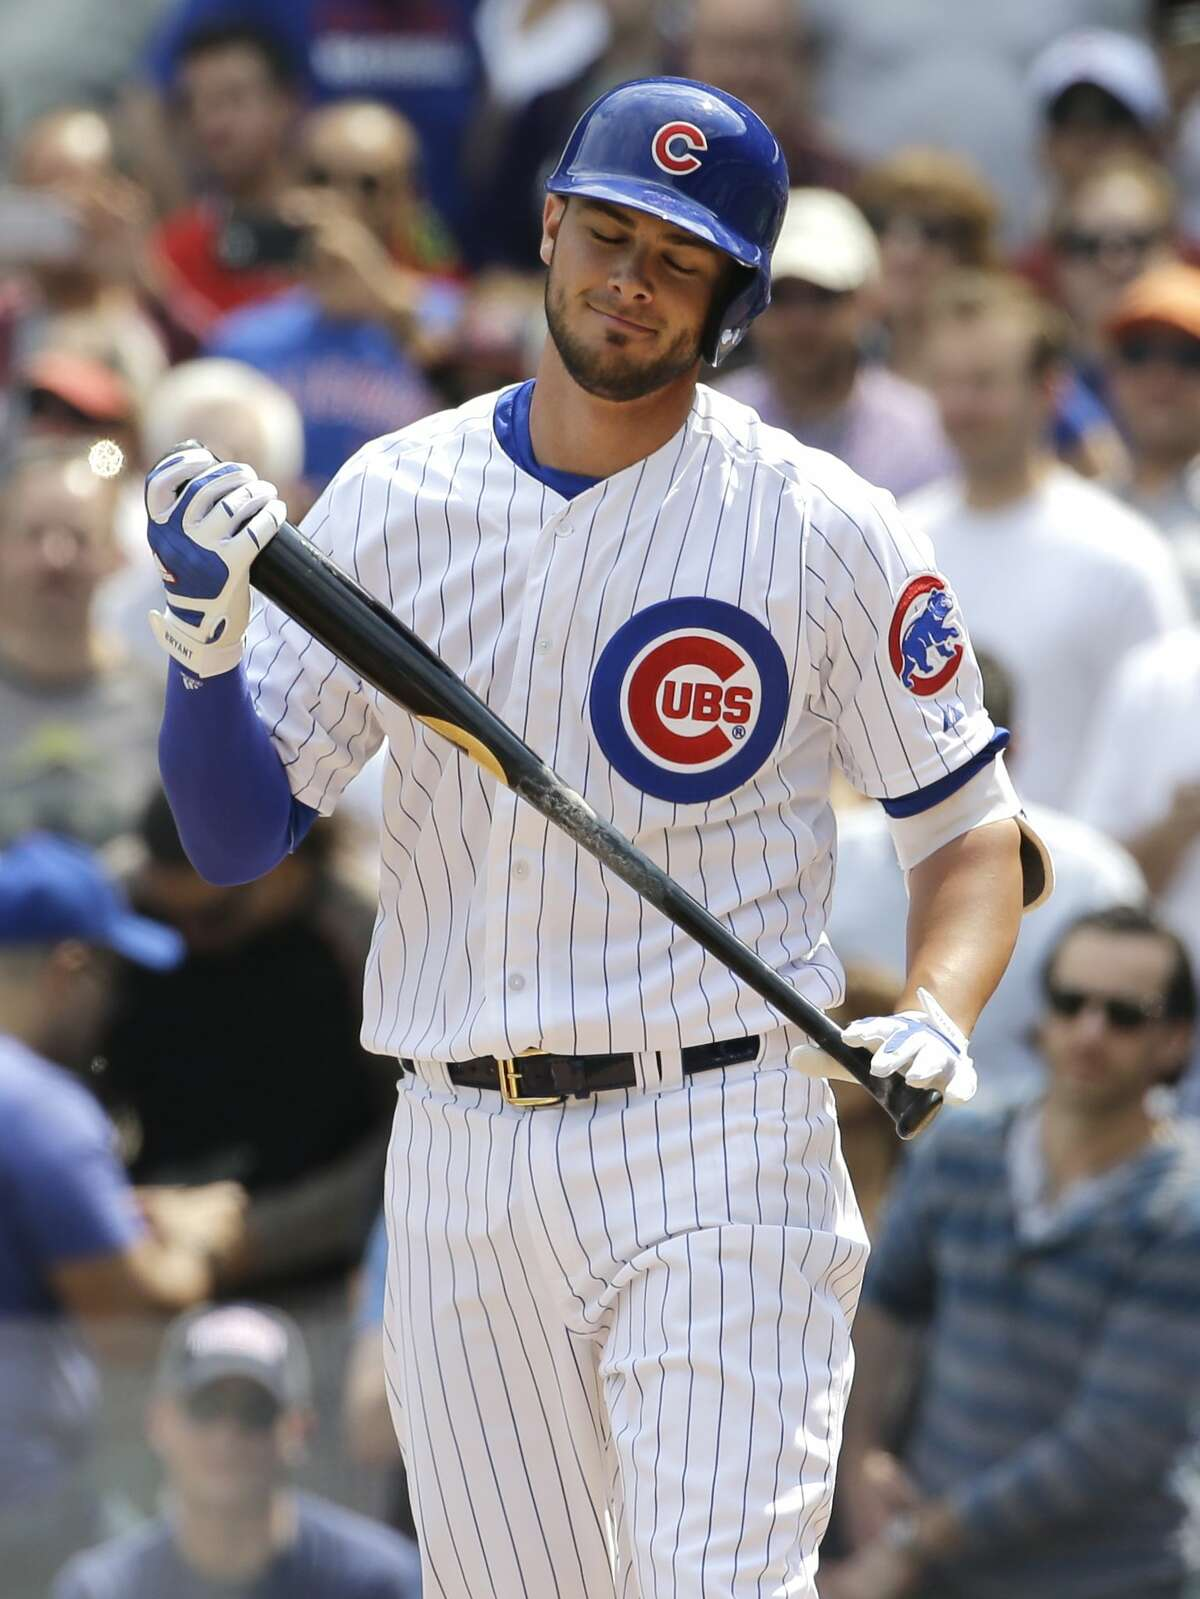 Cubs rookie Kris Bryant reacts after striking out in his first major league at-bat in the first inning of Friday's game against the San Diego Padres in Chicago.